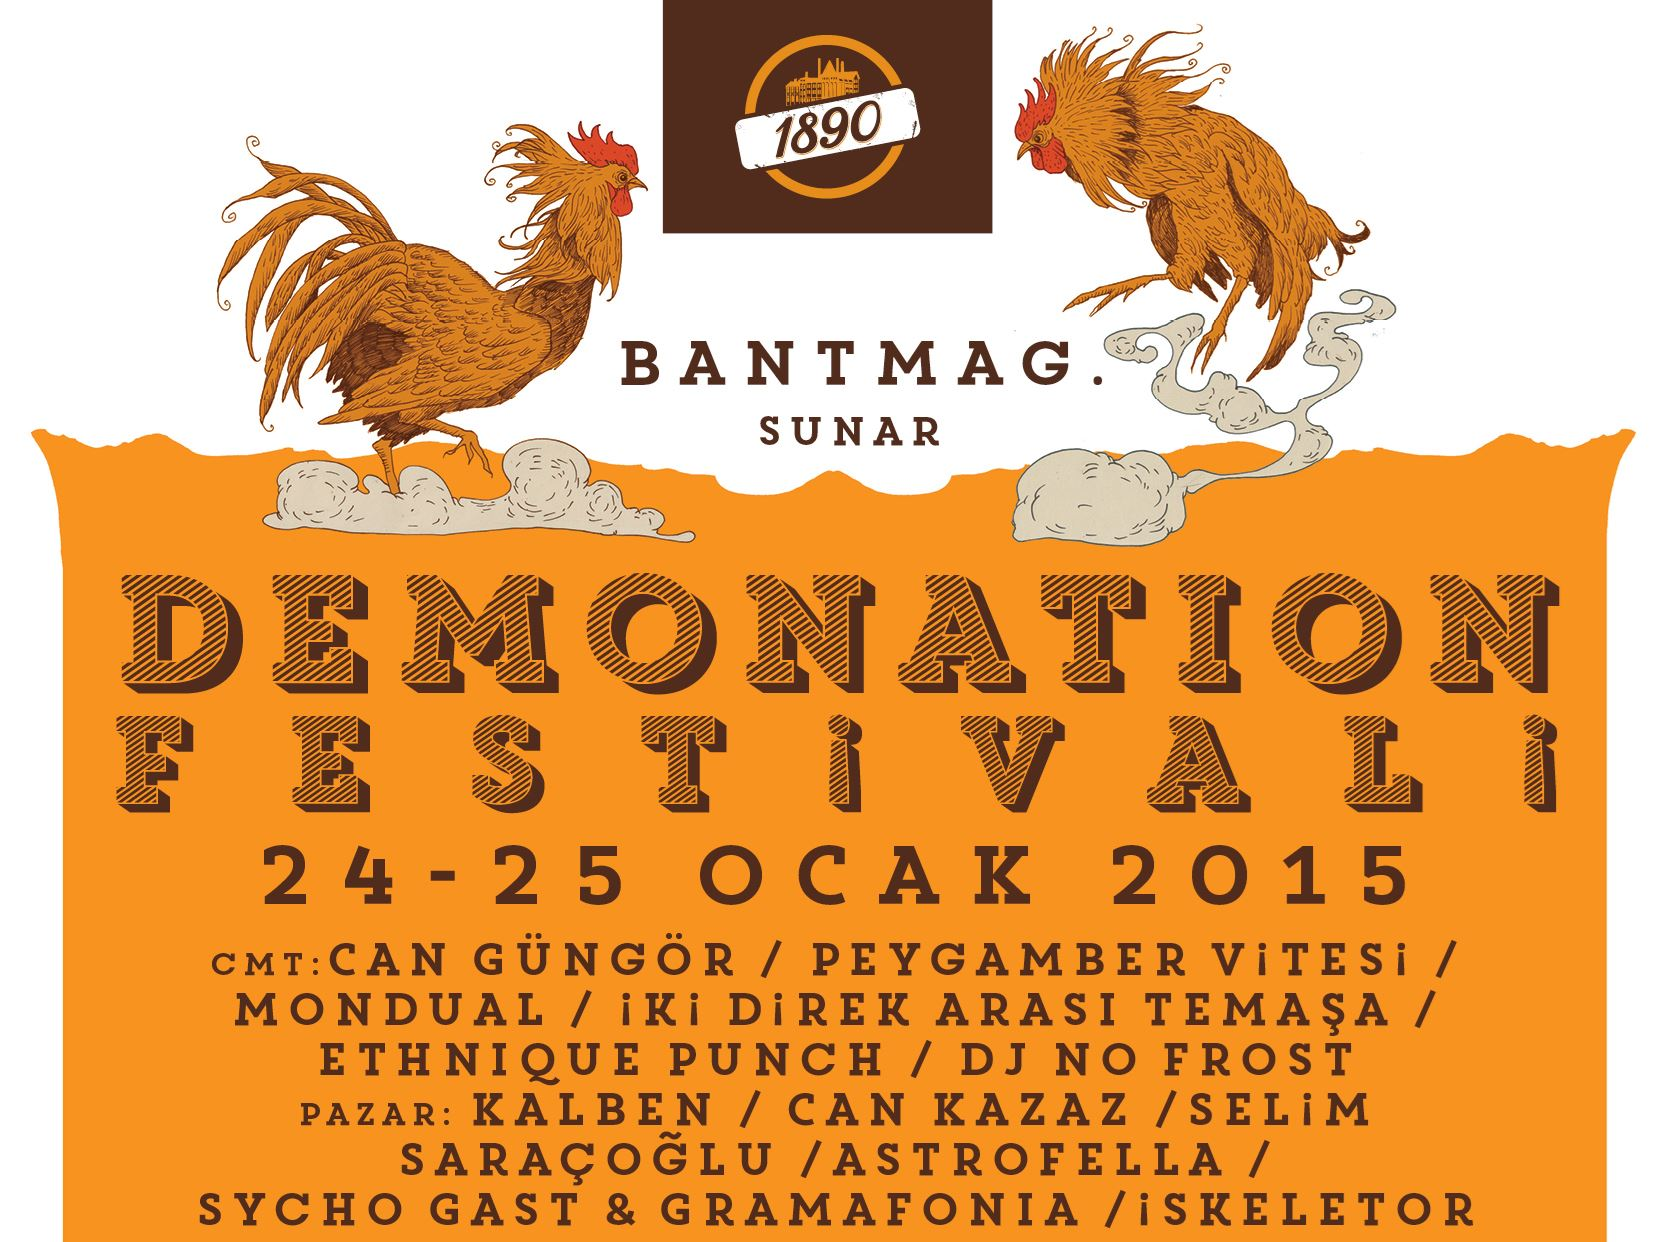 Bant Mag. sunar: Demonation Festivali No:5 - 2. Gün